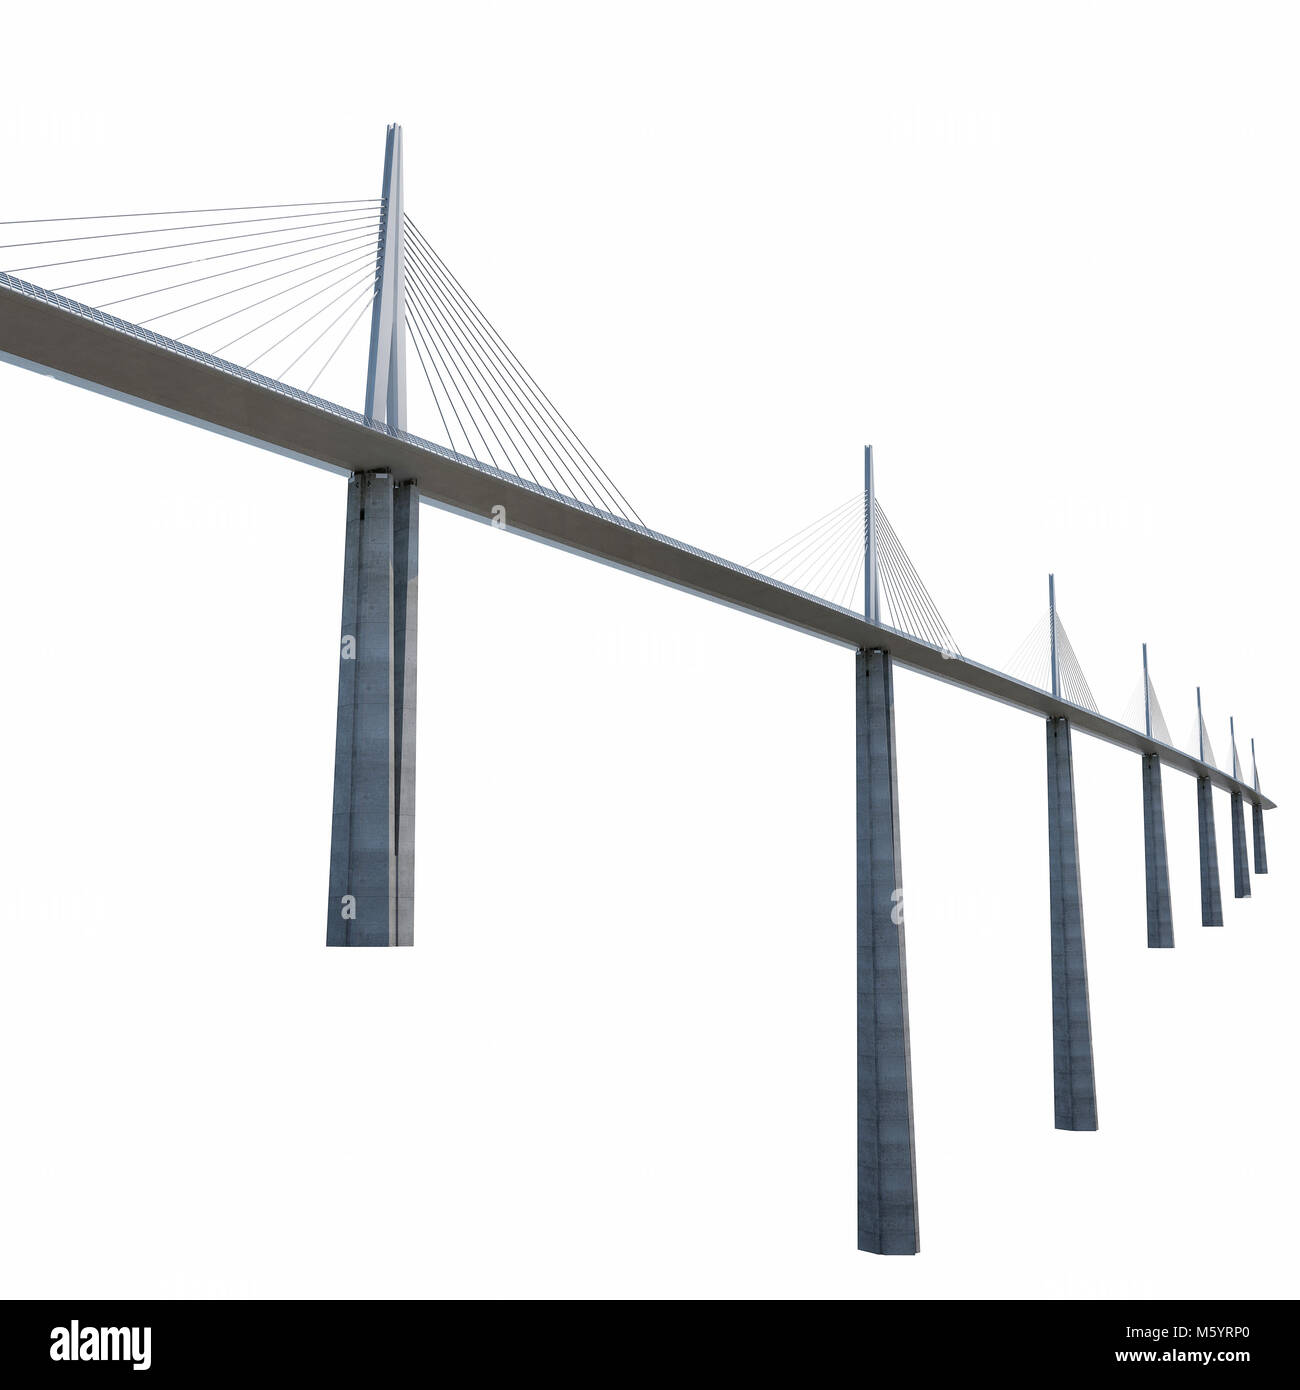 Millau Viaduct Bridge on white. 3D illustration - Stock Image